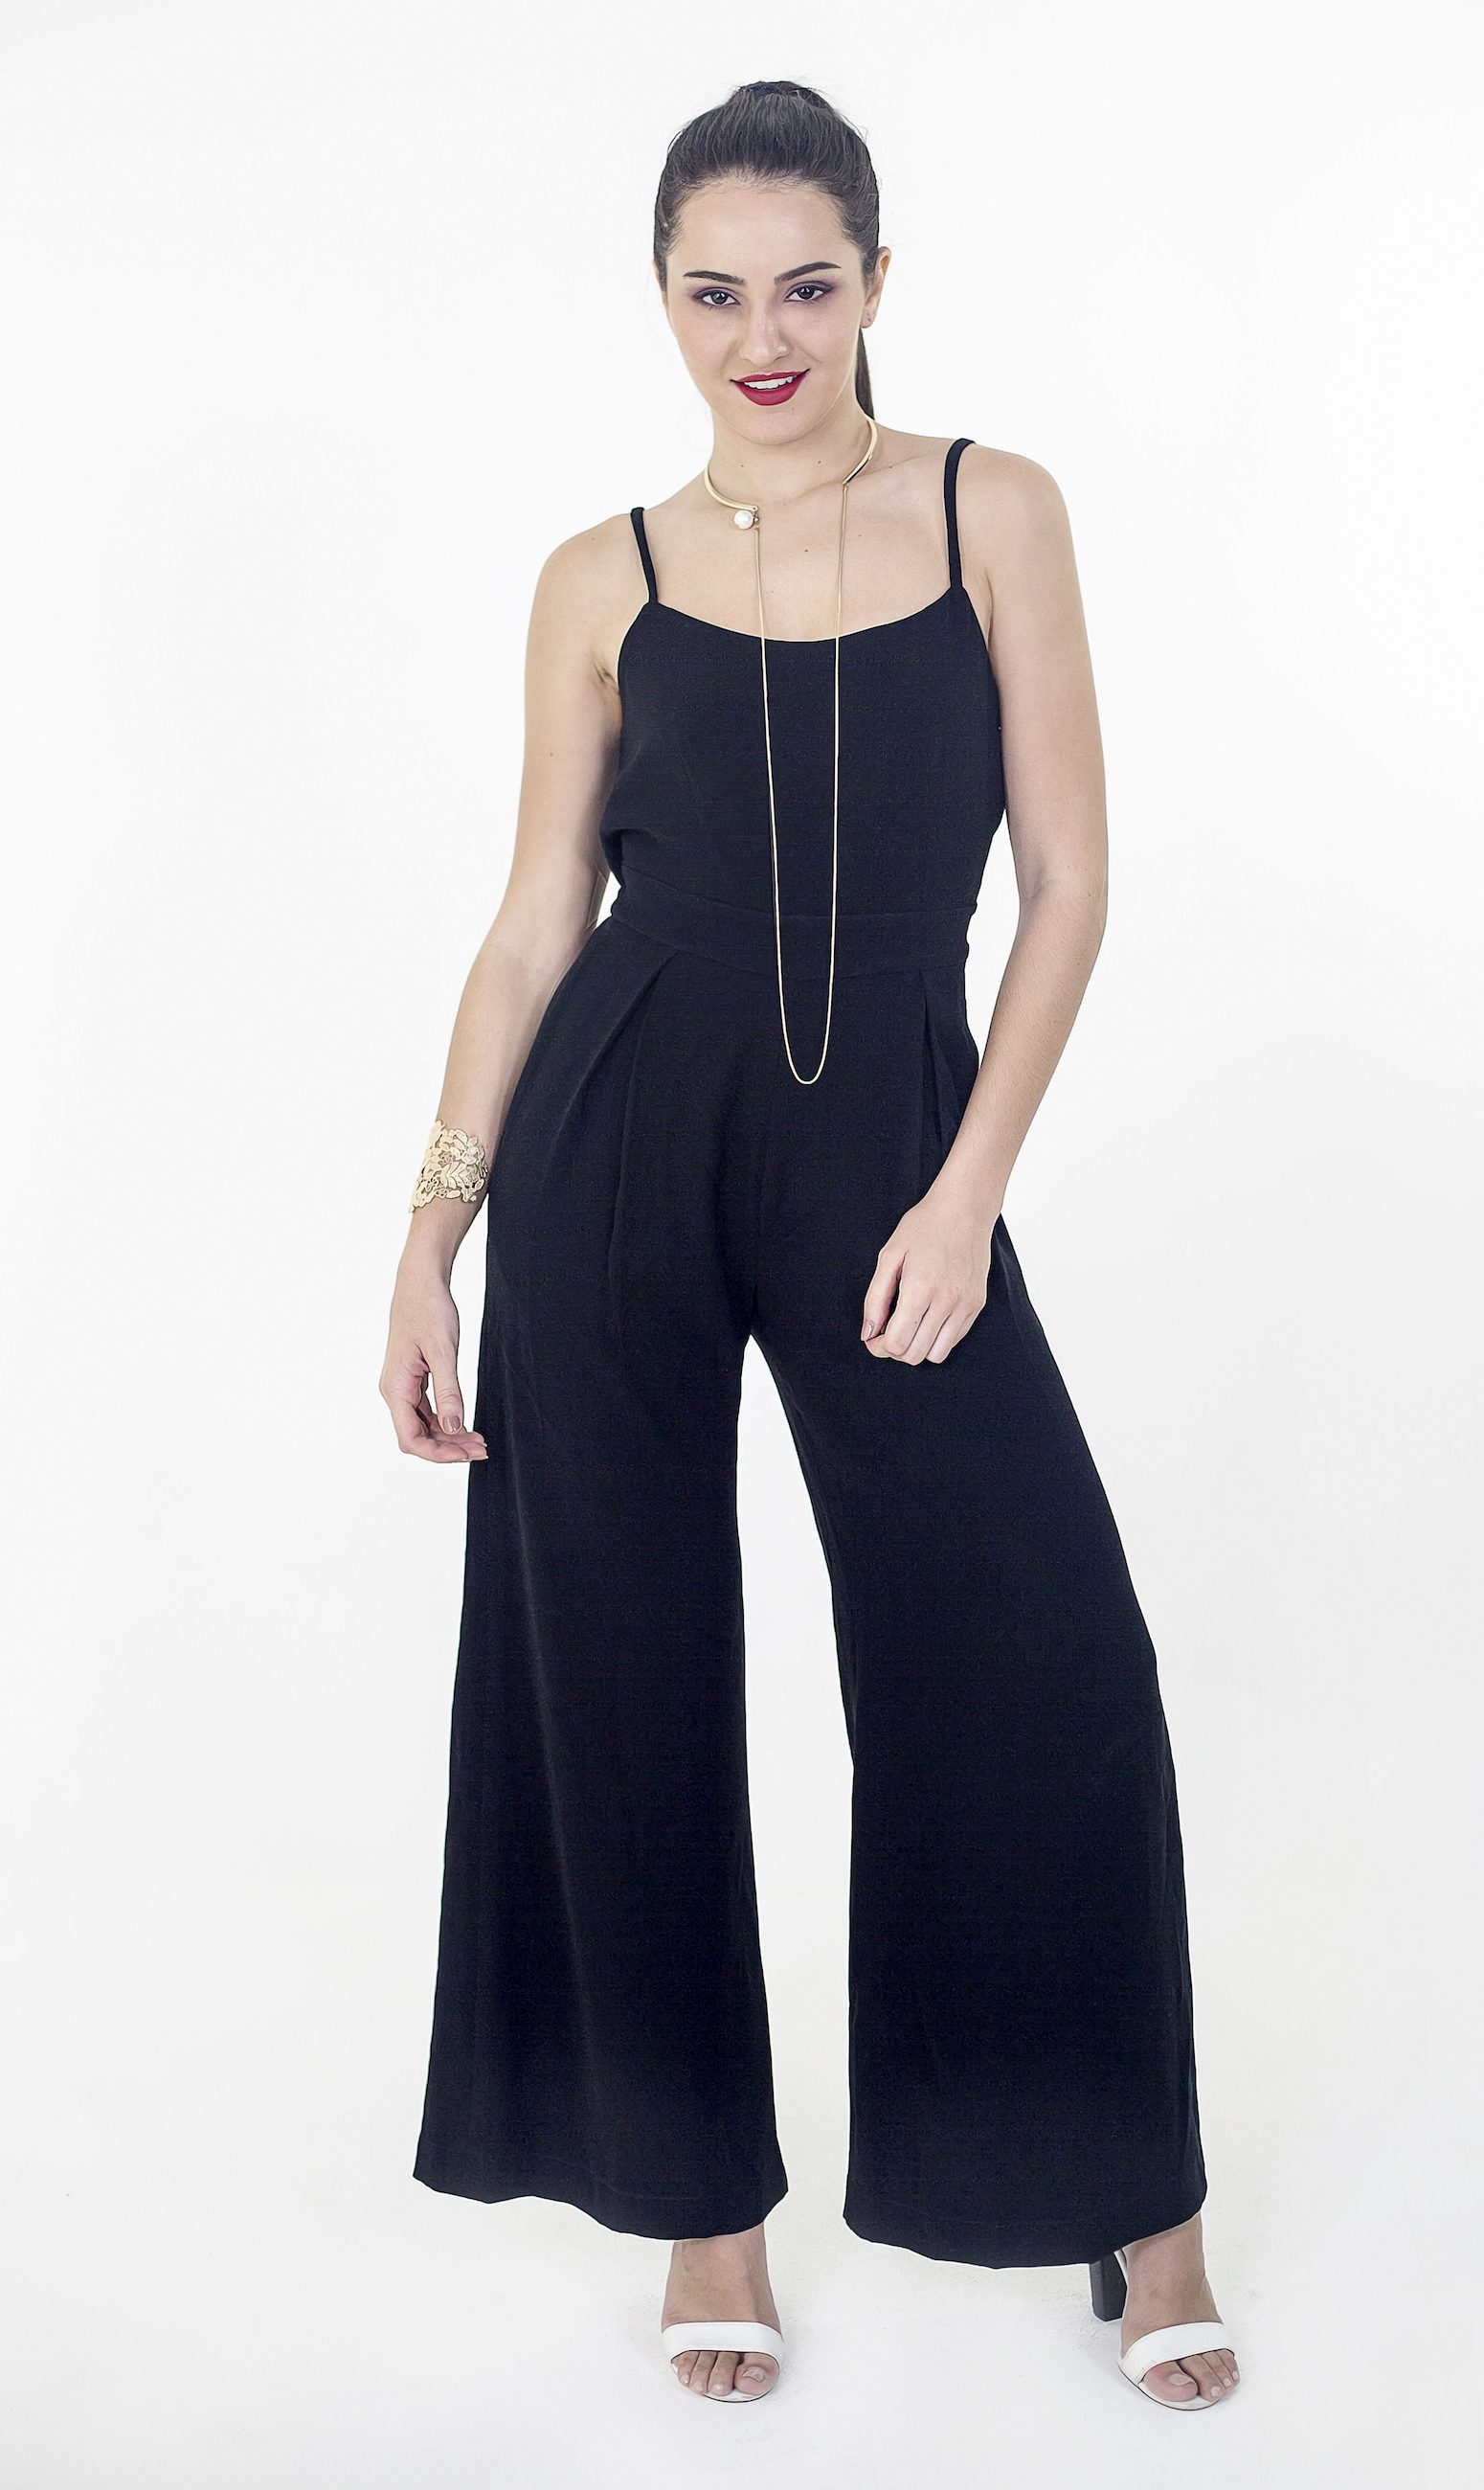 drape-backed-and-wide-legged-jumpsuit-2_crop-3mb